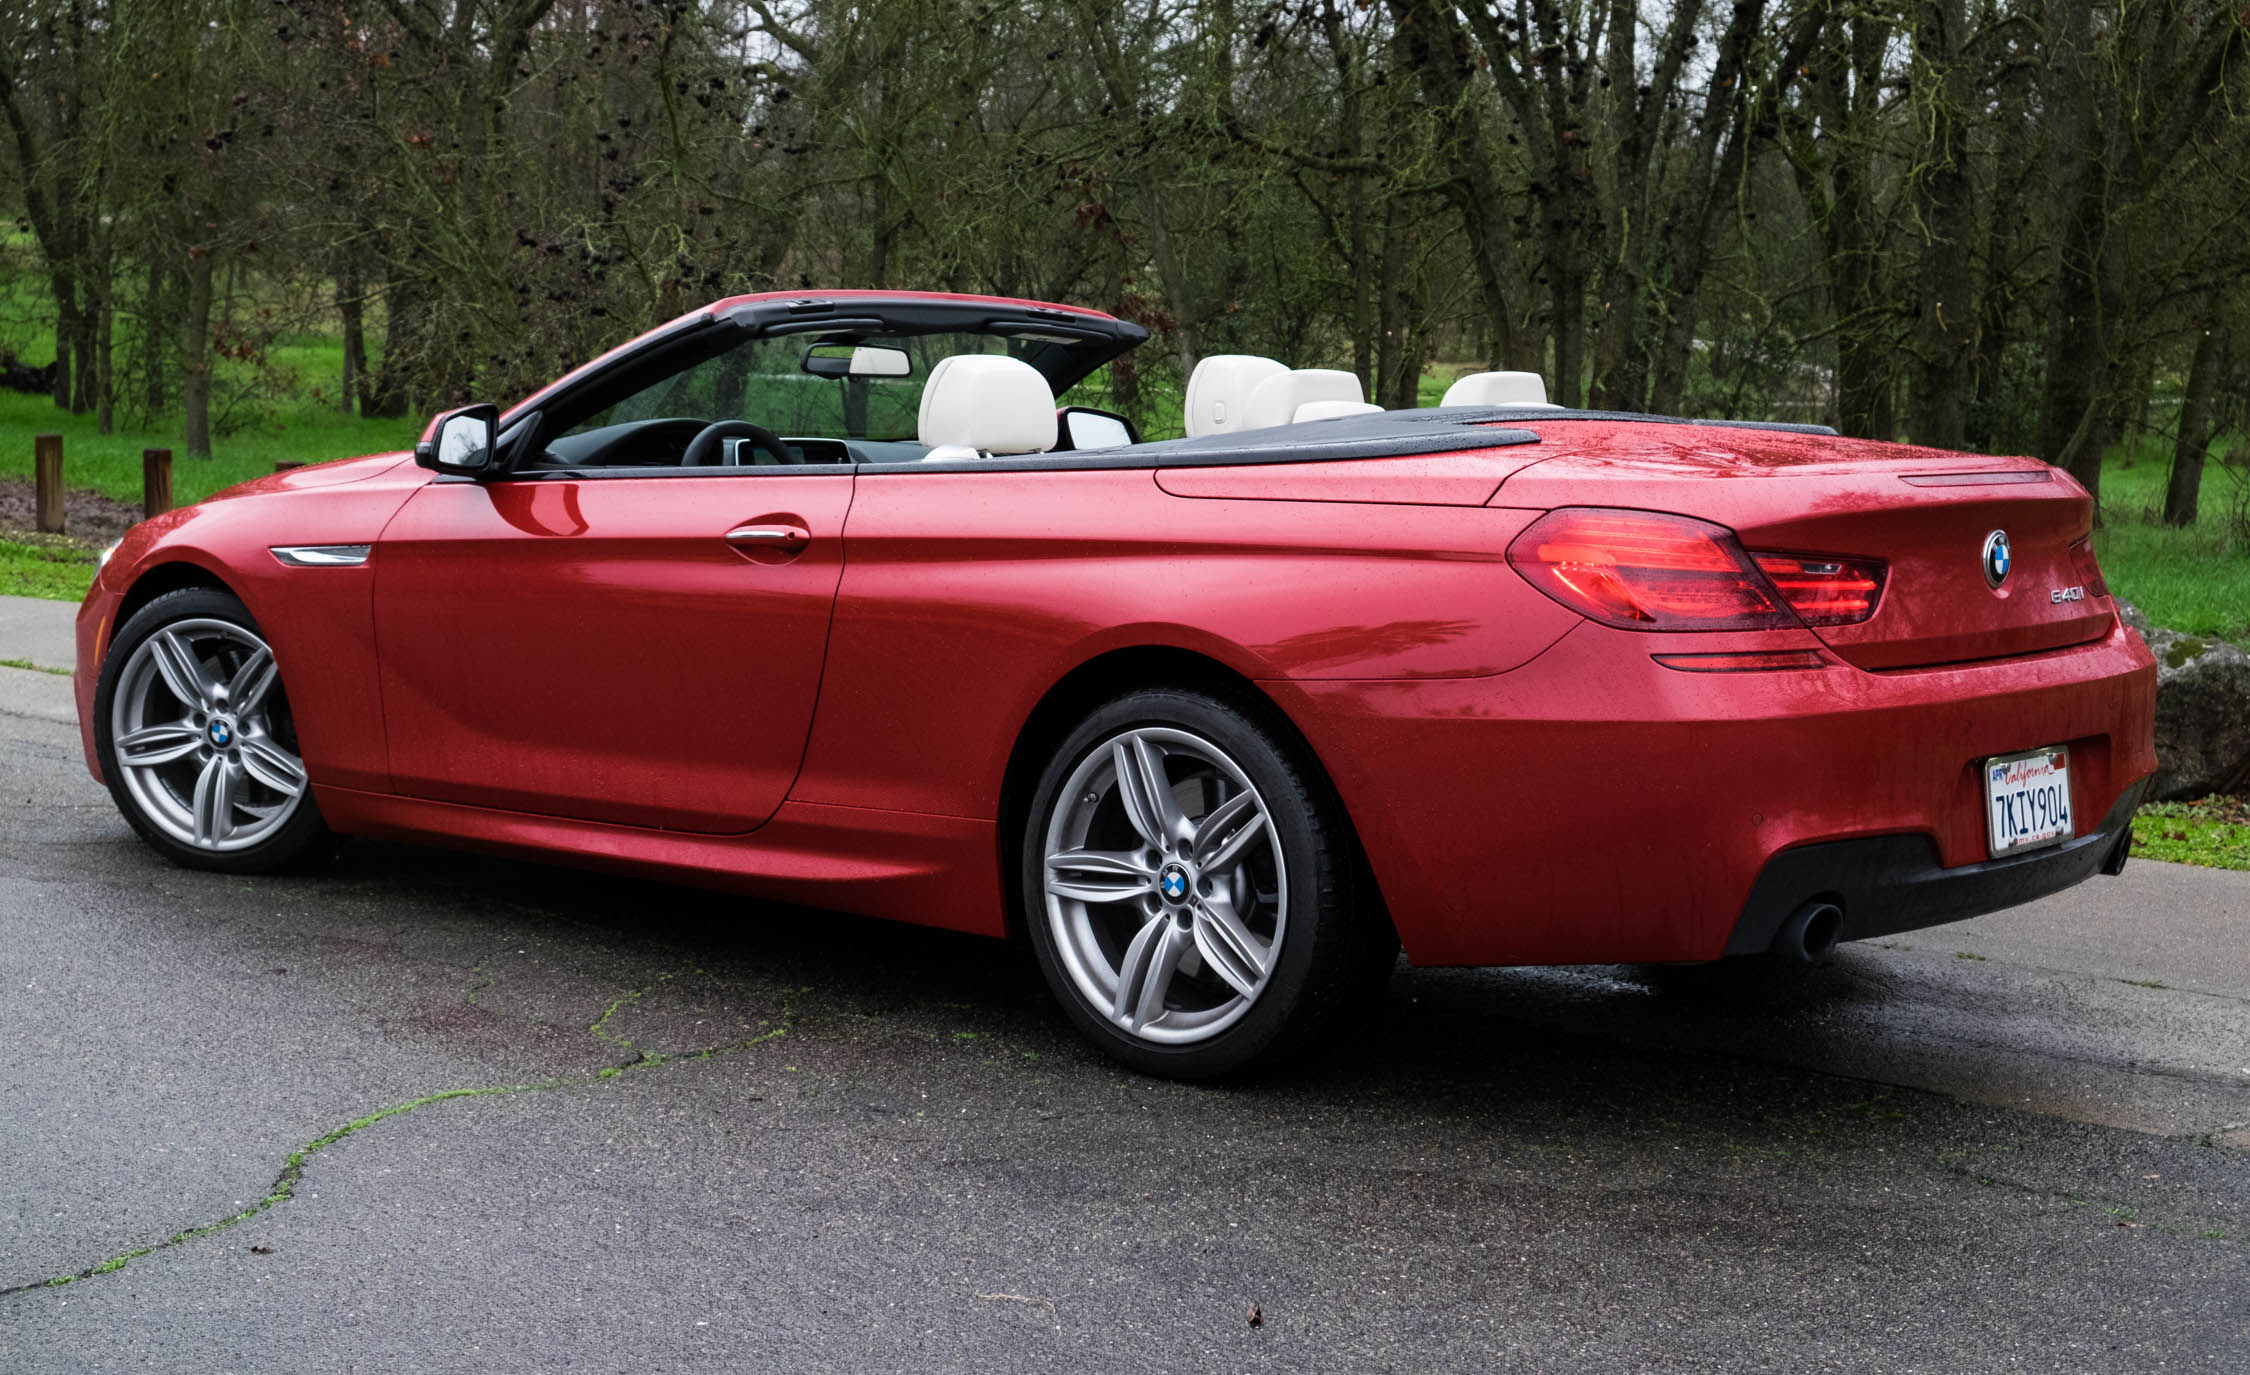 2016 Bmw 640i Convertible Cars Exclusive Videos And Photos Updates